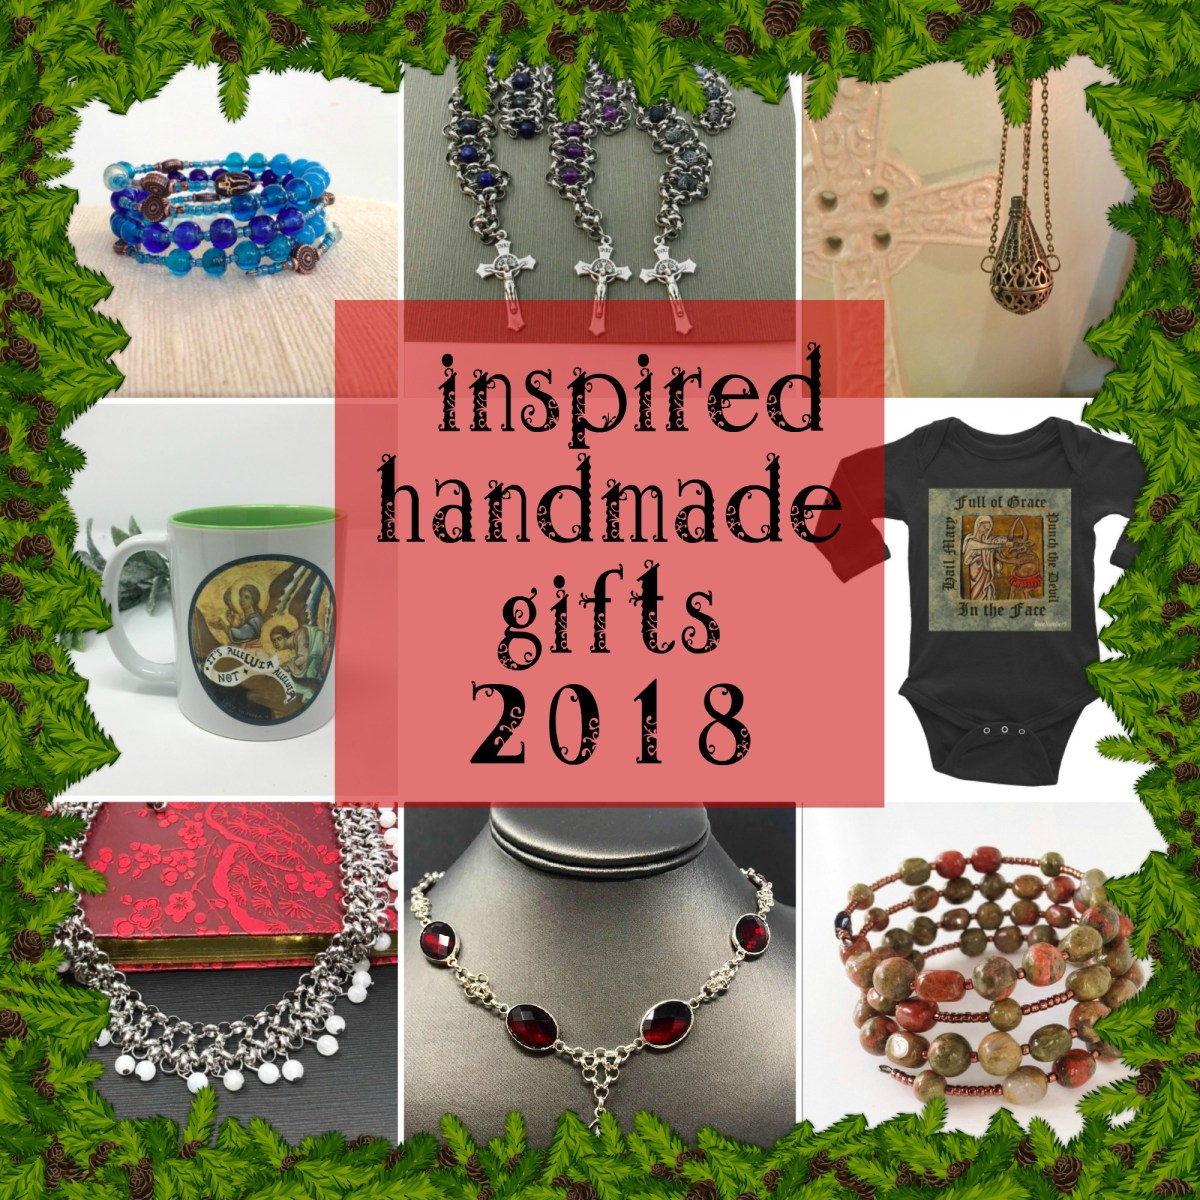 Inspired gifts handmade by working moms, 2018